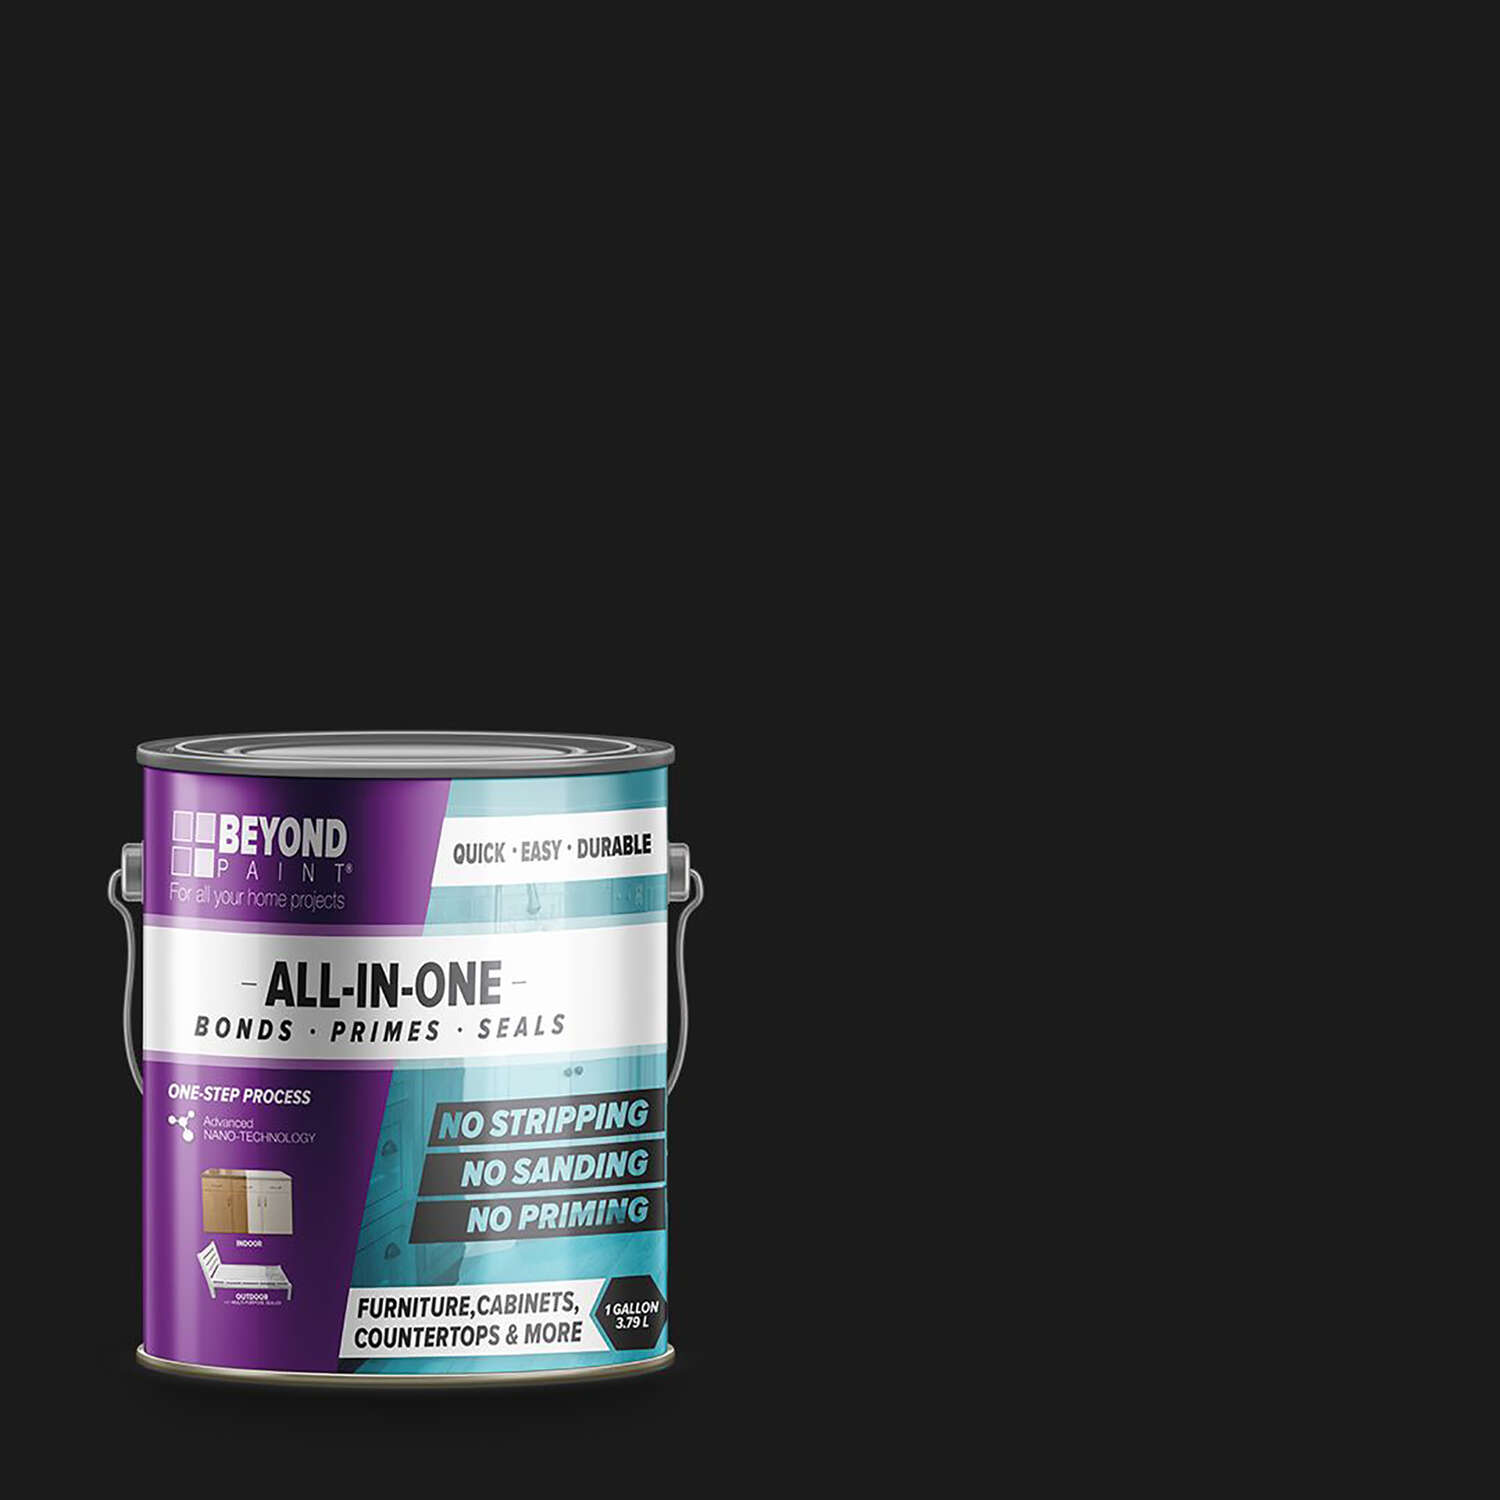 BEYOND PAINT  Matte  Licorice  Water-Based  Acrylic  All-In-One Paint  Indoor and Outdoor  1 gal.